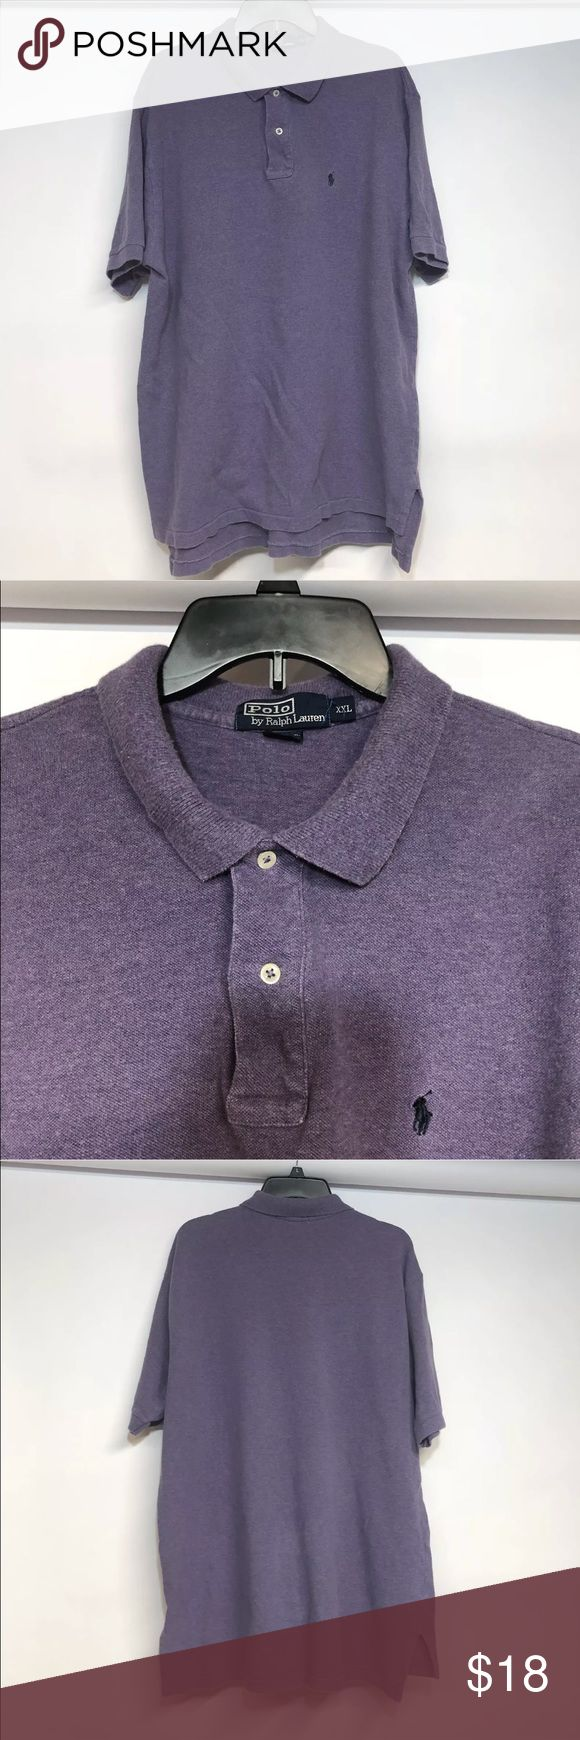 """Polo Ralph Lauren Size XXL Polo Purple Casual Thanks for stopping by at OneManlyShop!!!  Item: Polo Ralph Lauren Men's Size XXL Polo Purple Short Sleeve Casual   Condition: In good used condition.   Please refer to images for more details about this item. If you have any questions please feel free to ask. All measurements are taken with the item laying and are approximate.  Armpit to Armpit: 26""""  Shoulder to Hem: 32"""" Polo by Ralph Lauren Shirts Tees - Short Sleeve"""